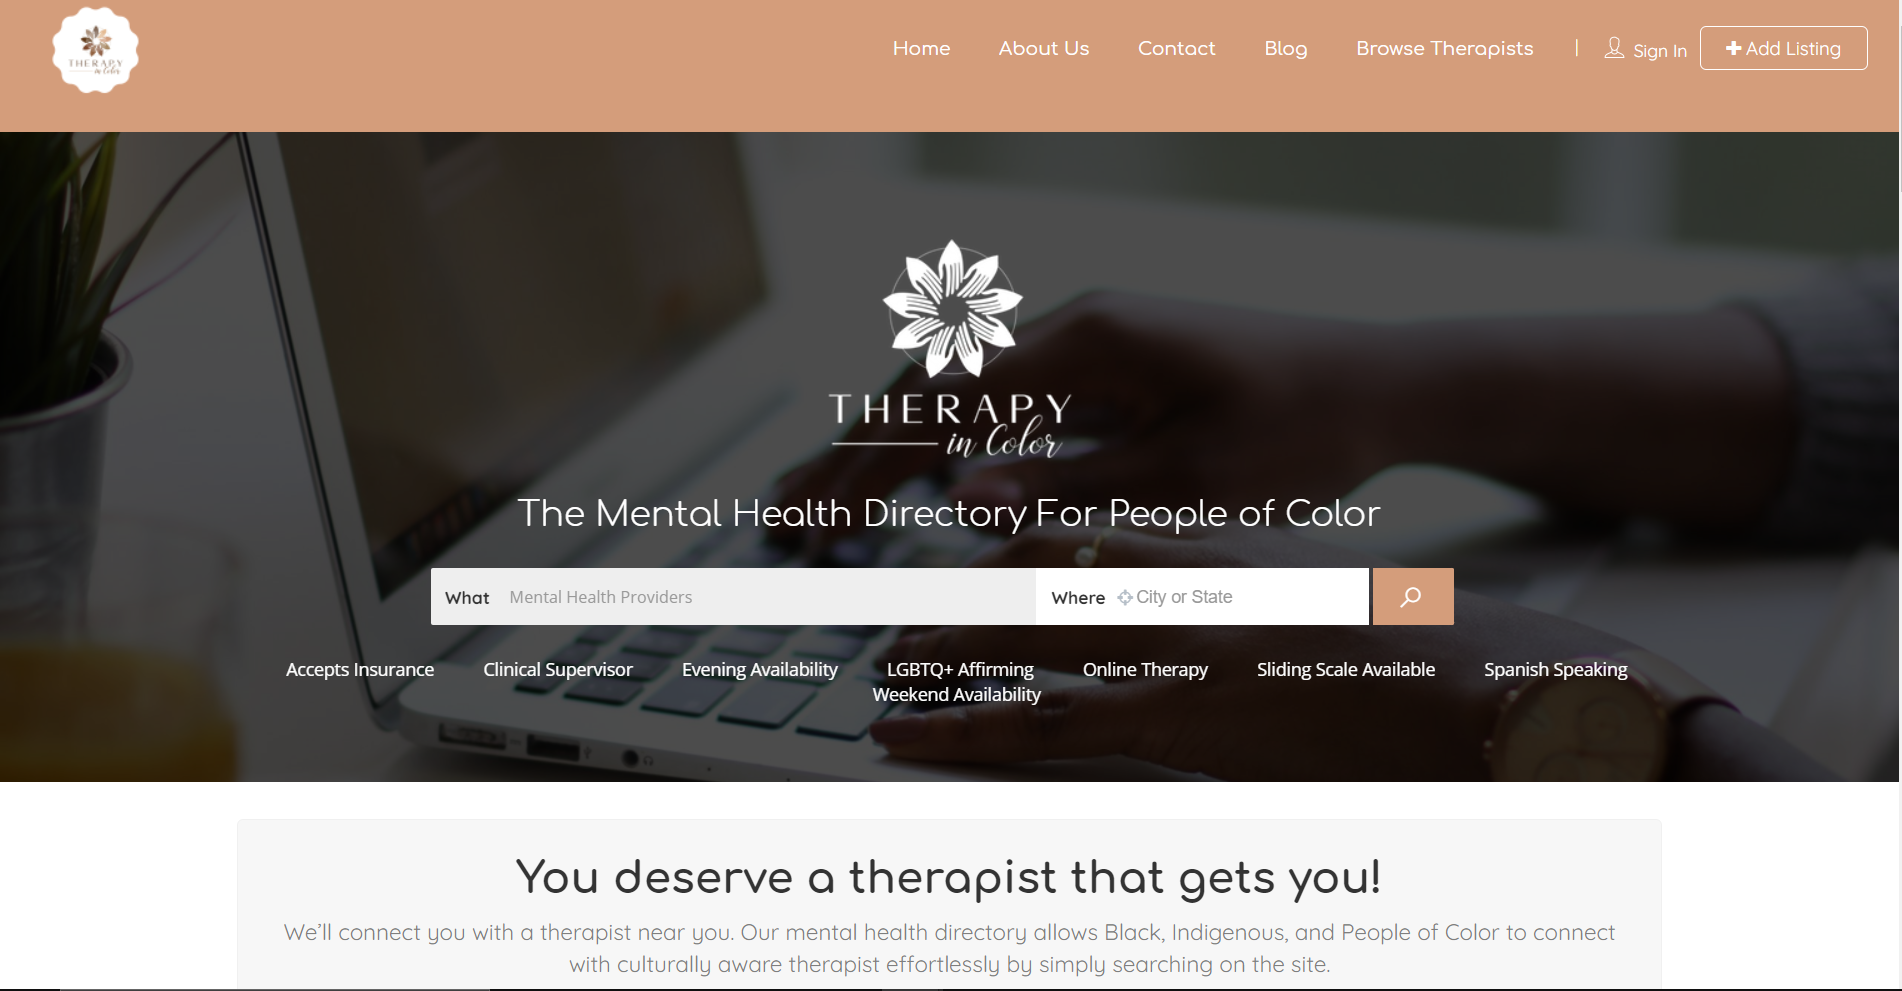 Therapy in color